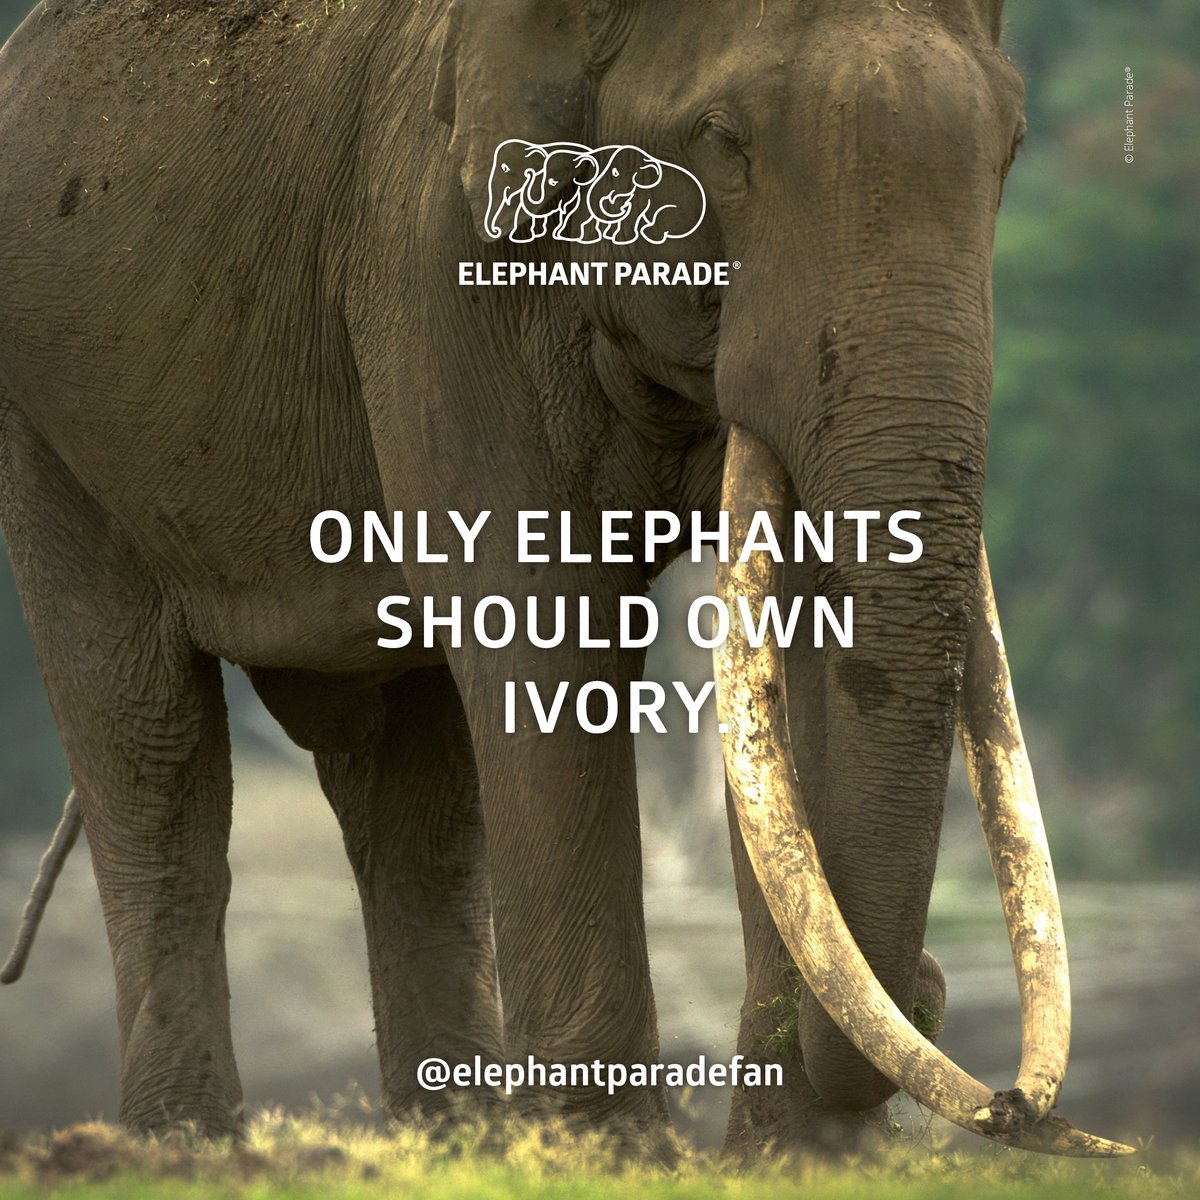 Only elephants should own ivory.  #WednesdayWisdom⁠ ⁠⠀ ⁠⠀ #elephantparadefan #elephantstatue #elephantparade #elephants #elephant #saveelephants #elephantlove #elephantconservation #elephantparade #exhibition #art⠀pic.twitter.com/BkJm0y7AFn